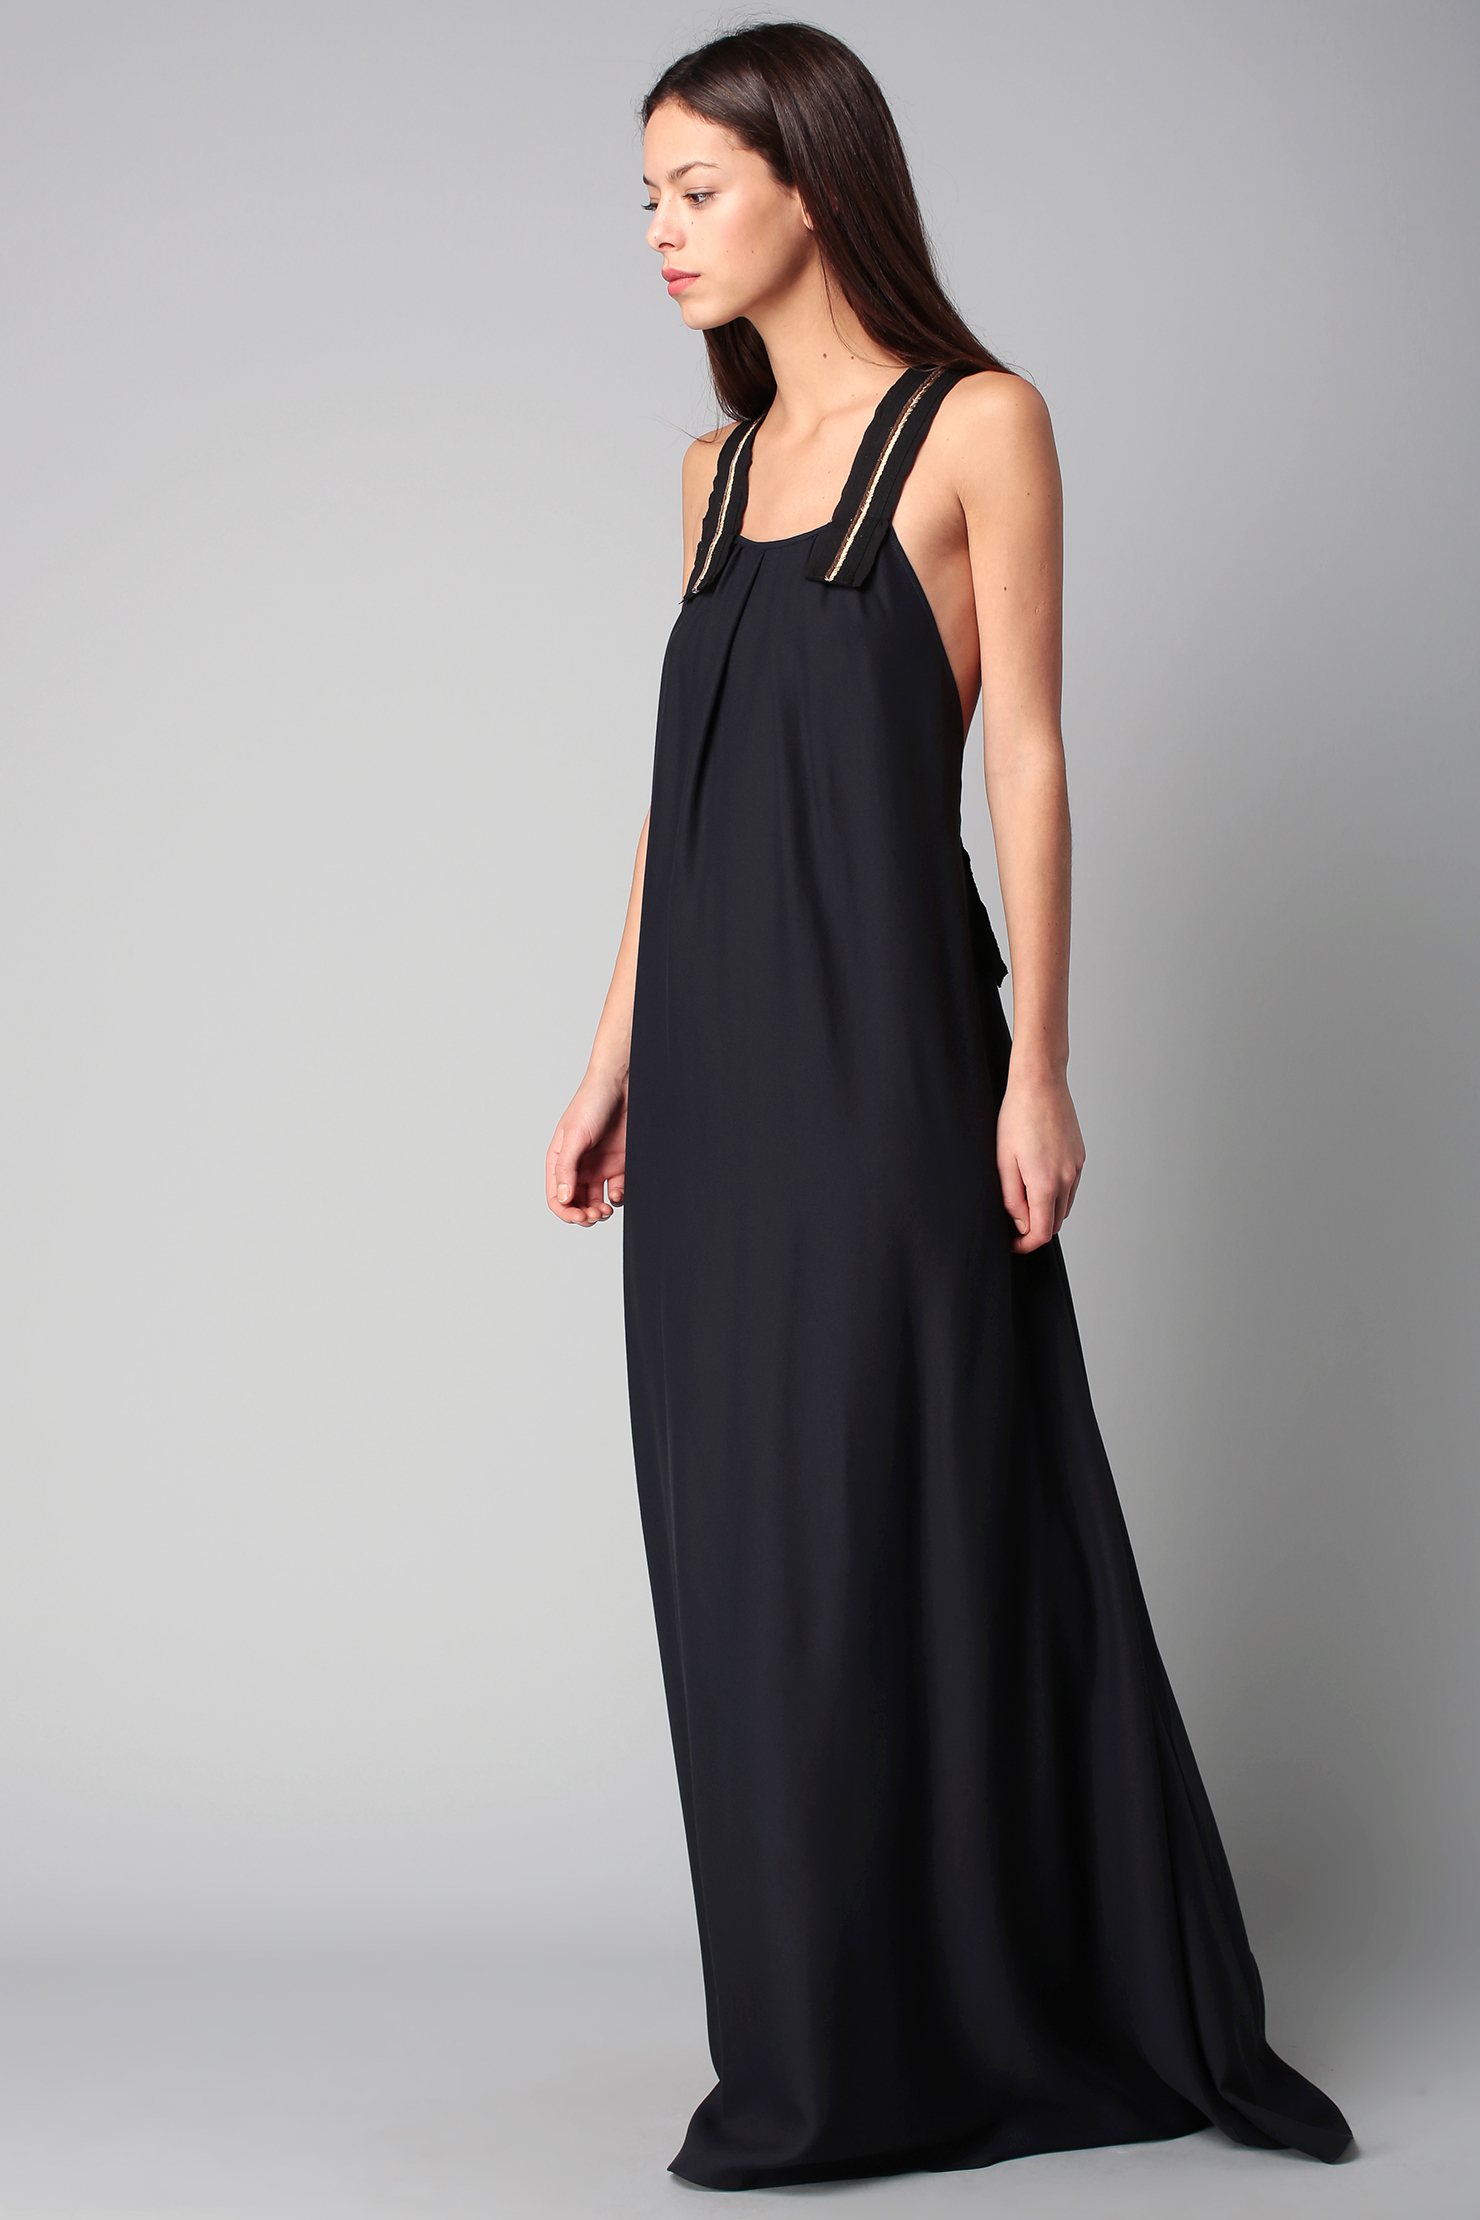 Camion benne maxity occasion dresses